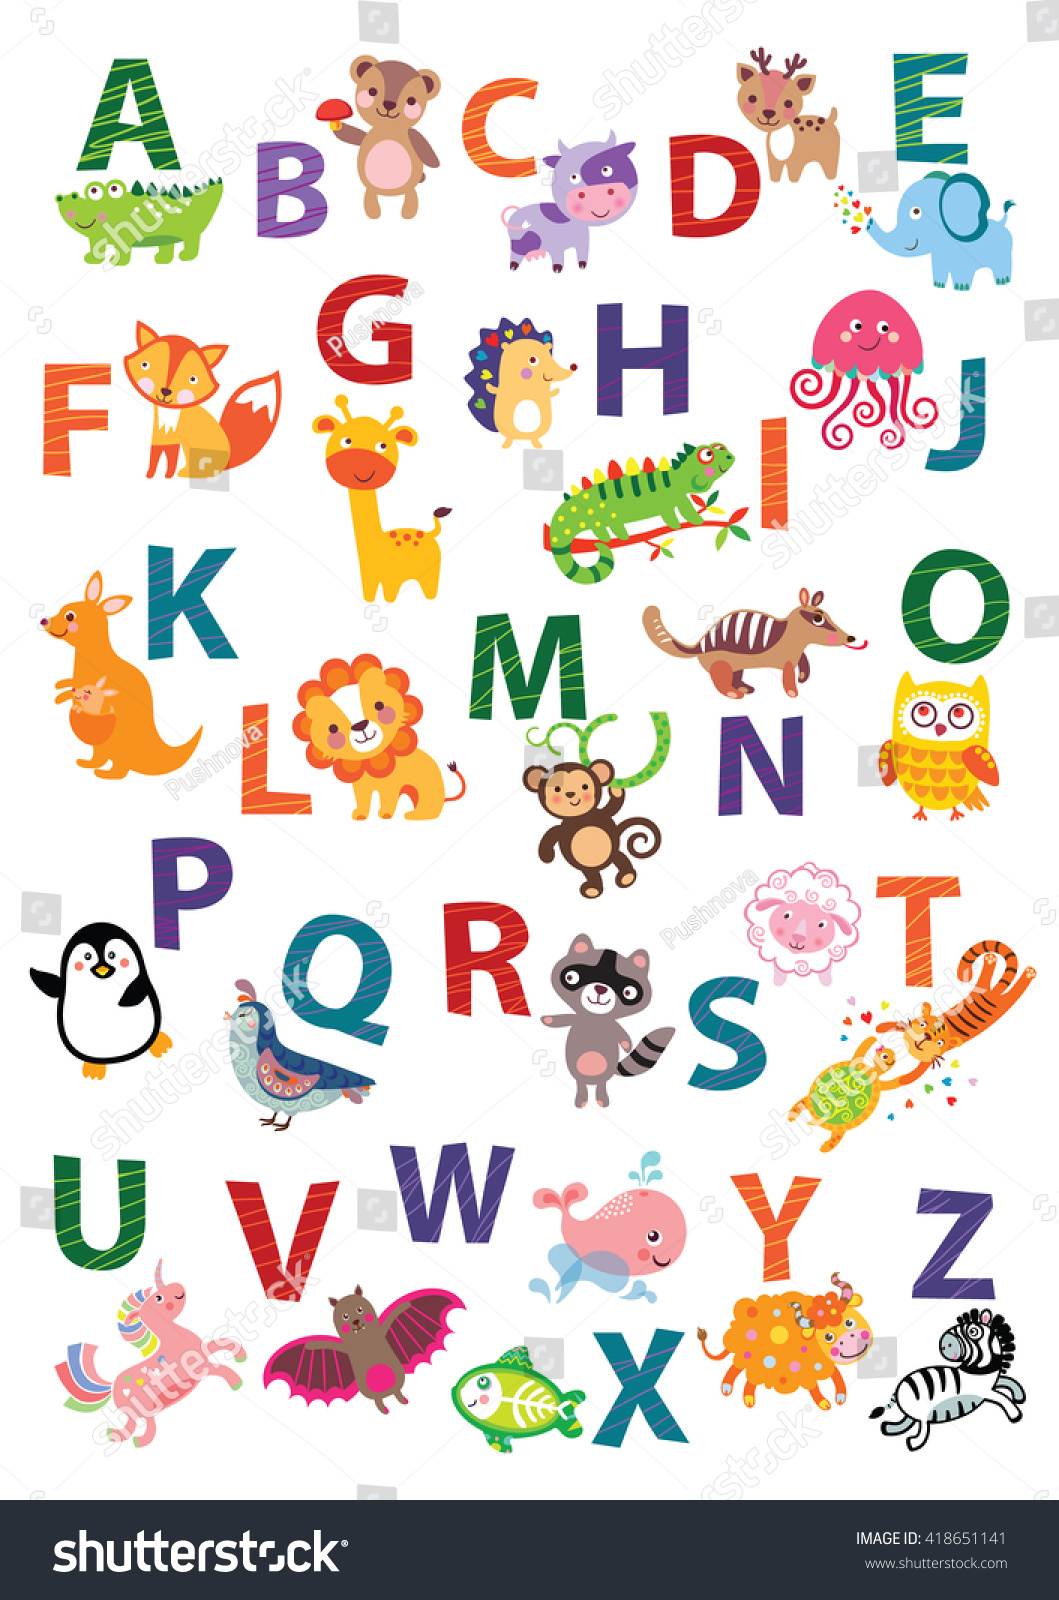 Cute Animal Alphabet English Alphabet Poster Nursery